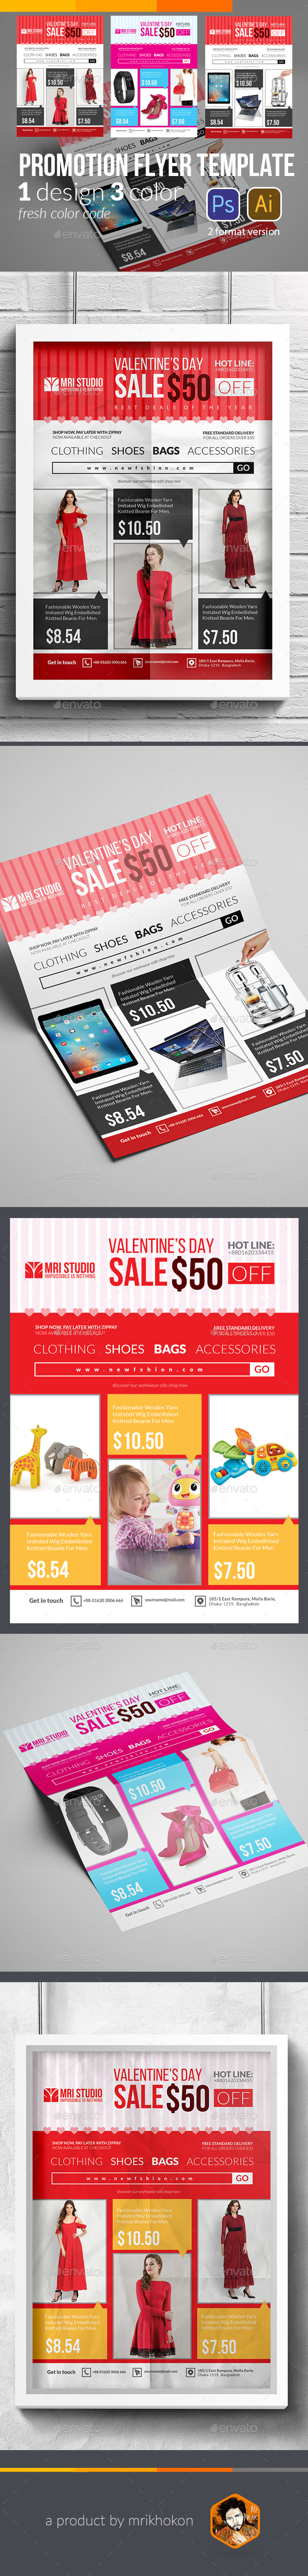 Promotion Flyer Template - Holidays Events